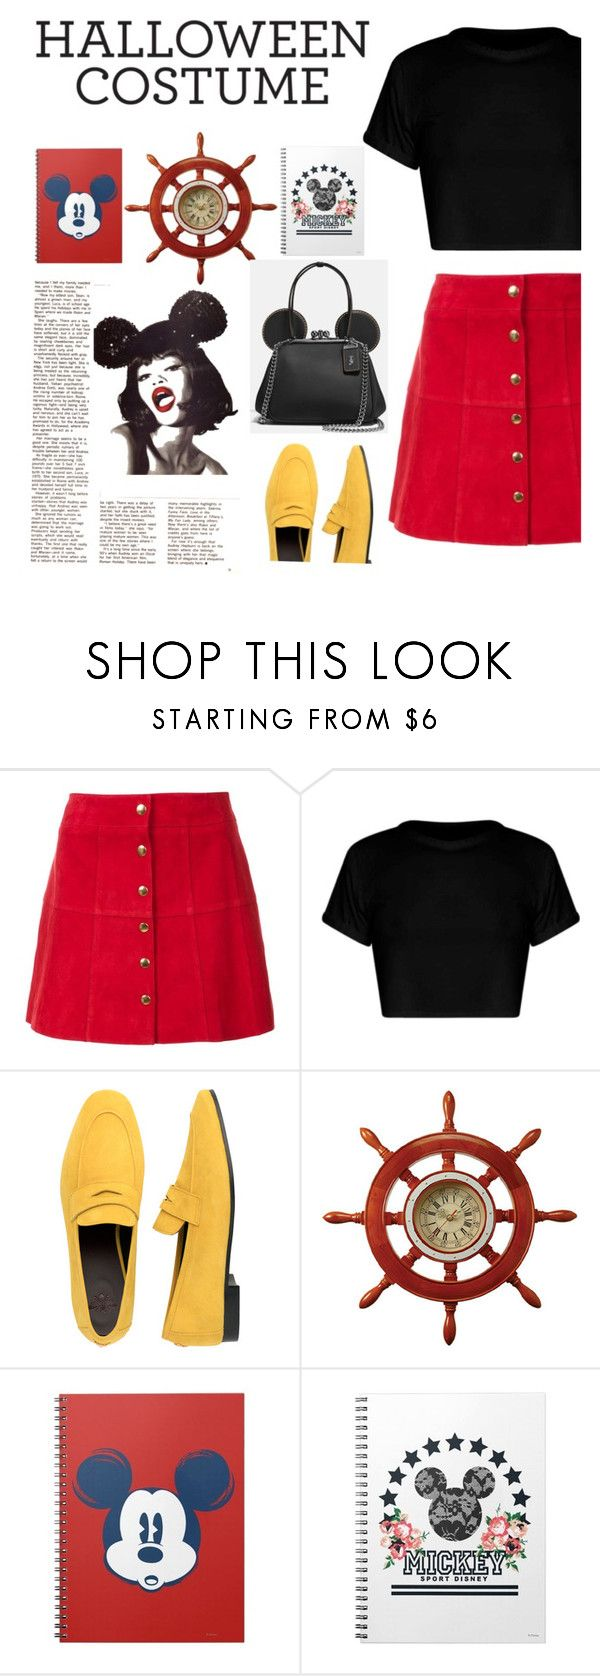 """""""Style #12 Mickey Special"""" by vinkyzain ❤ liked on Polyvore featuring Ines de la Fressange, Bougeotte, Disney, disney, mickeymouse, disneycharacter and halloweencostumes"""